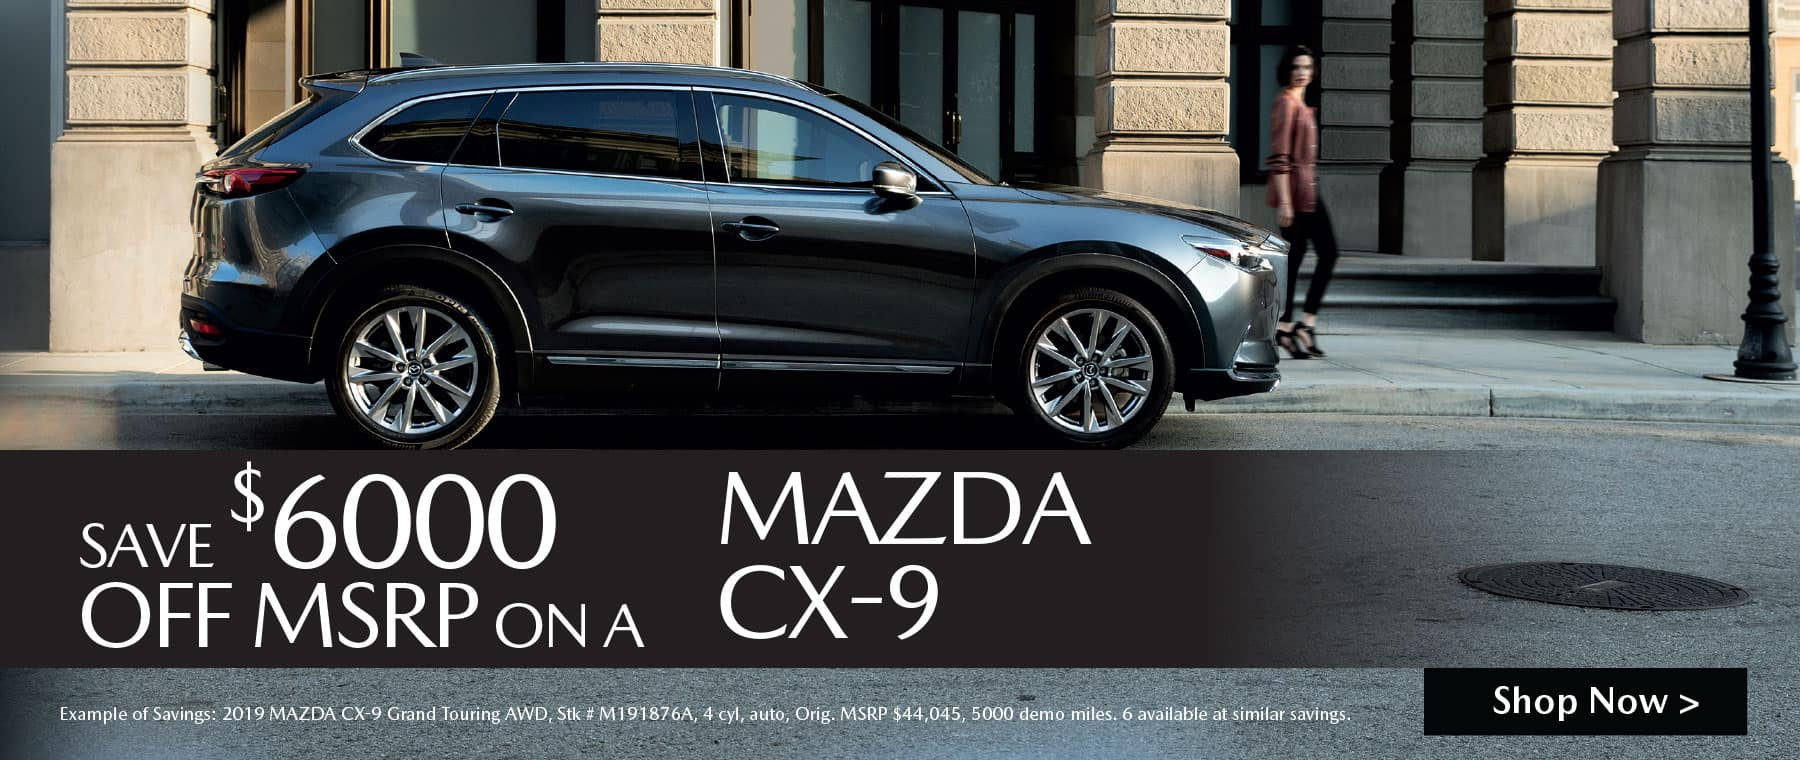 MAZDA CX-9 MSRP Savings